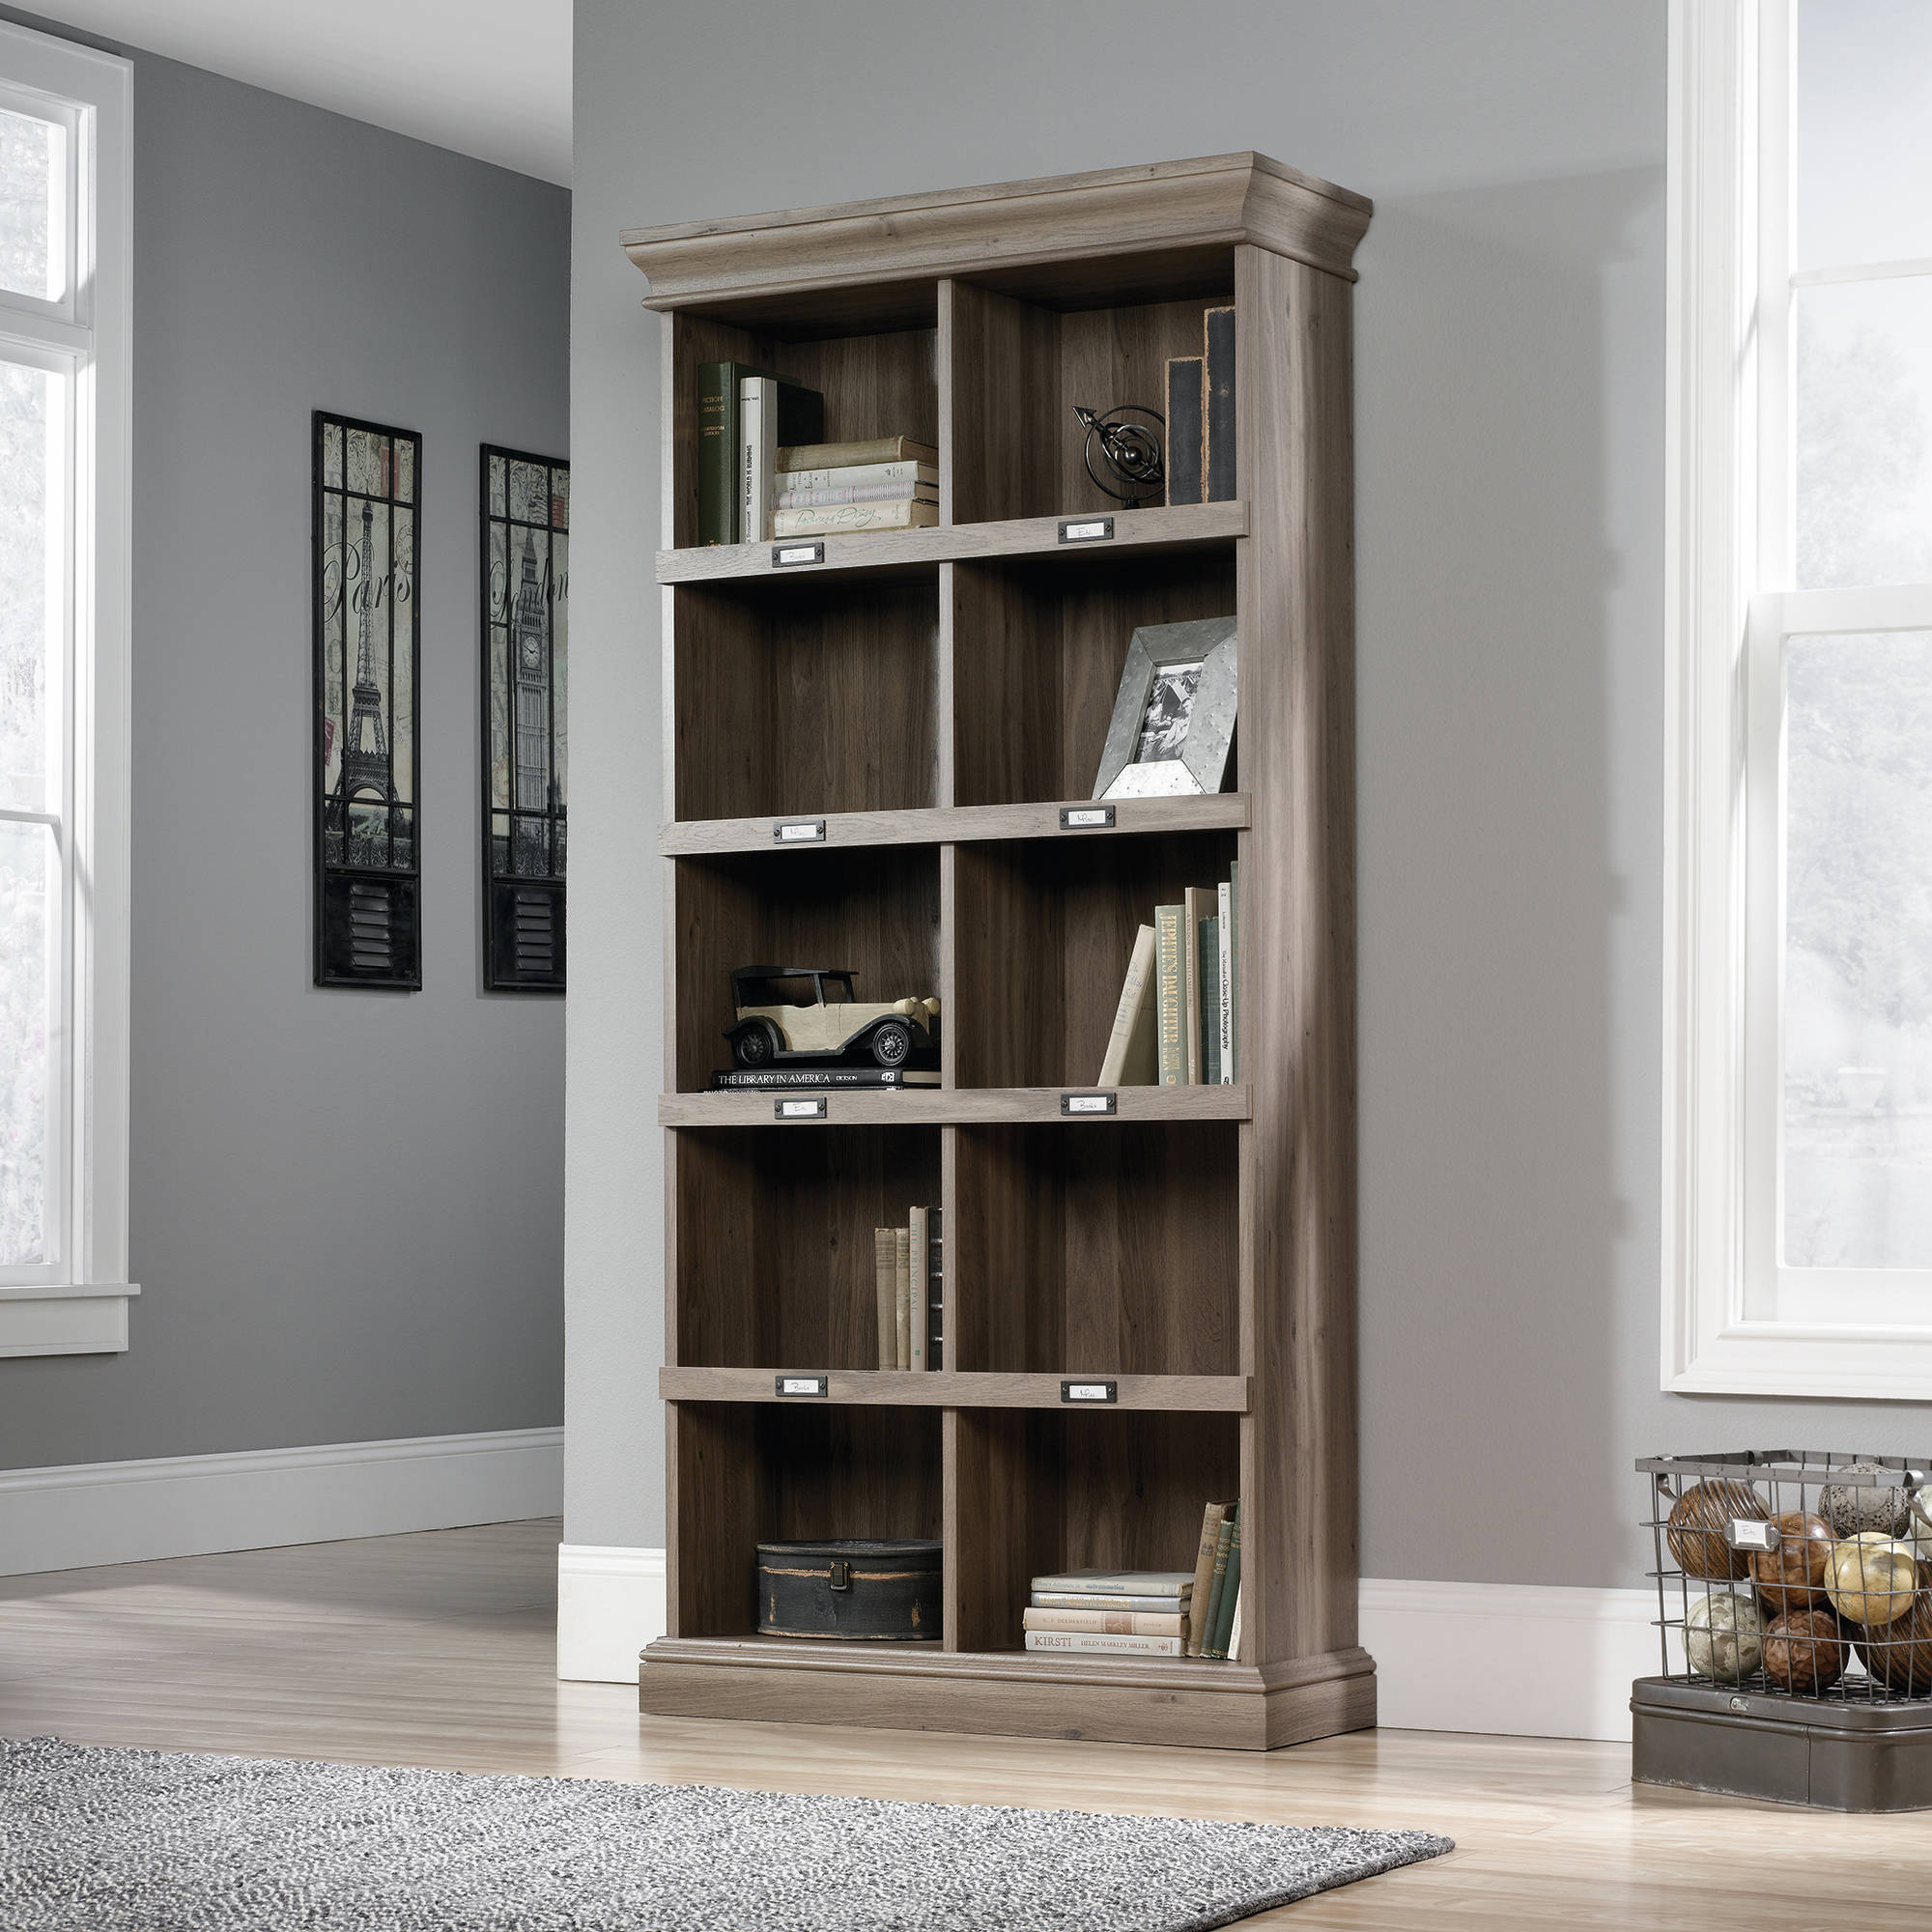 Cute Sauder Barrister Lane Tall Bookcase, Multiple Colors - Walmart.com sauder barrister bookcase